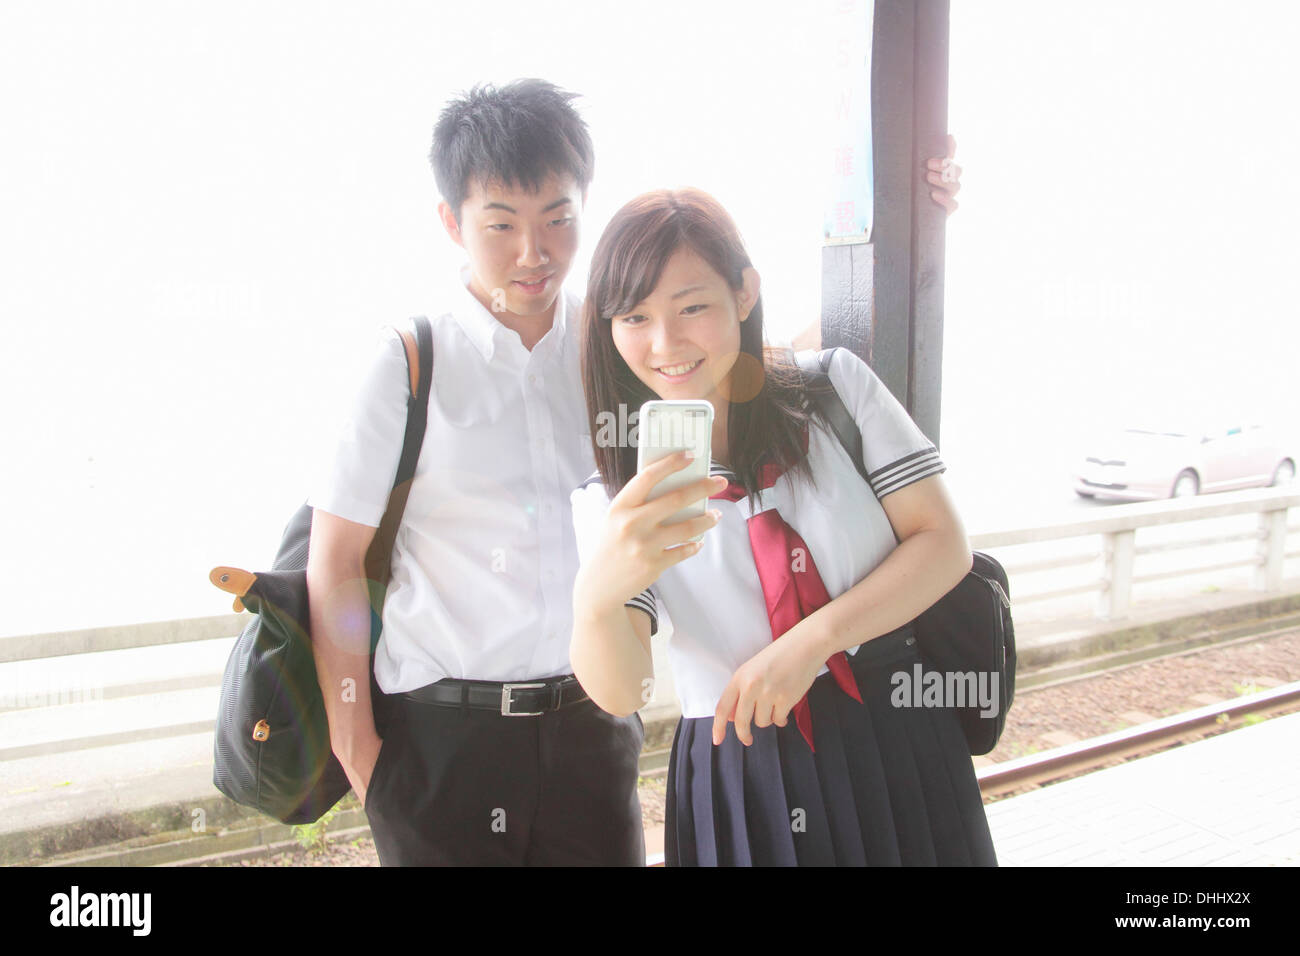 Young couple on railway platform looking at smartphone - Stock Image